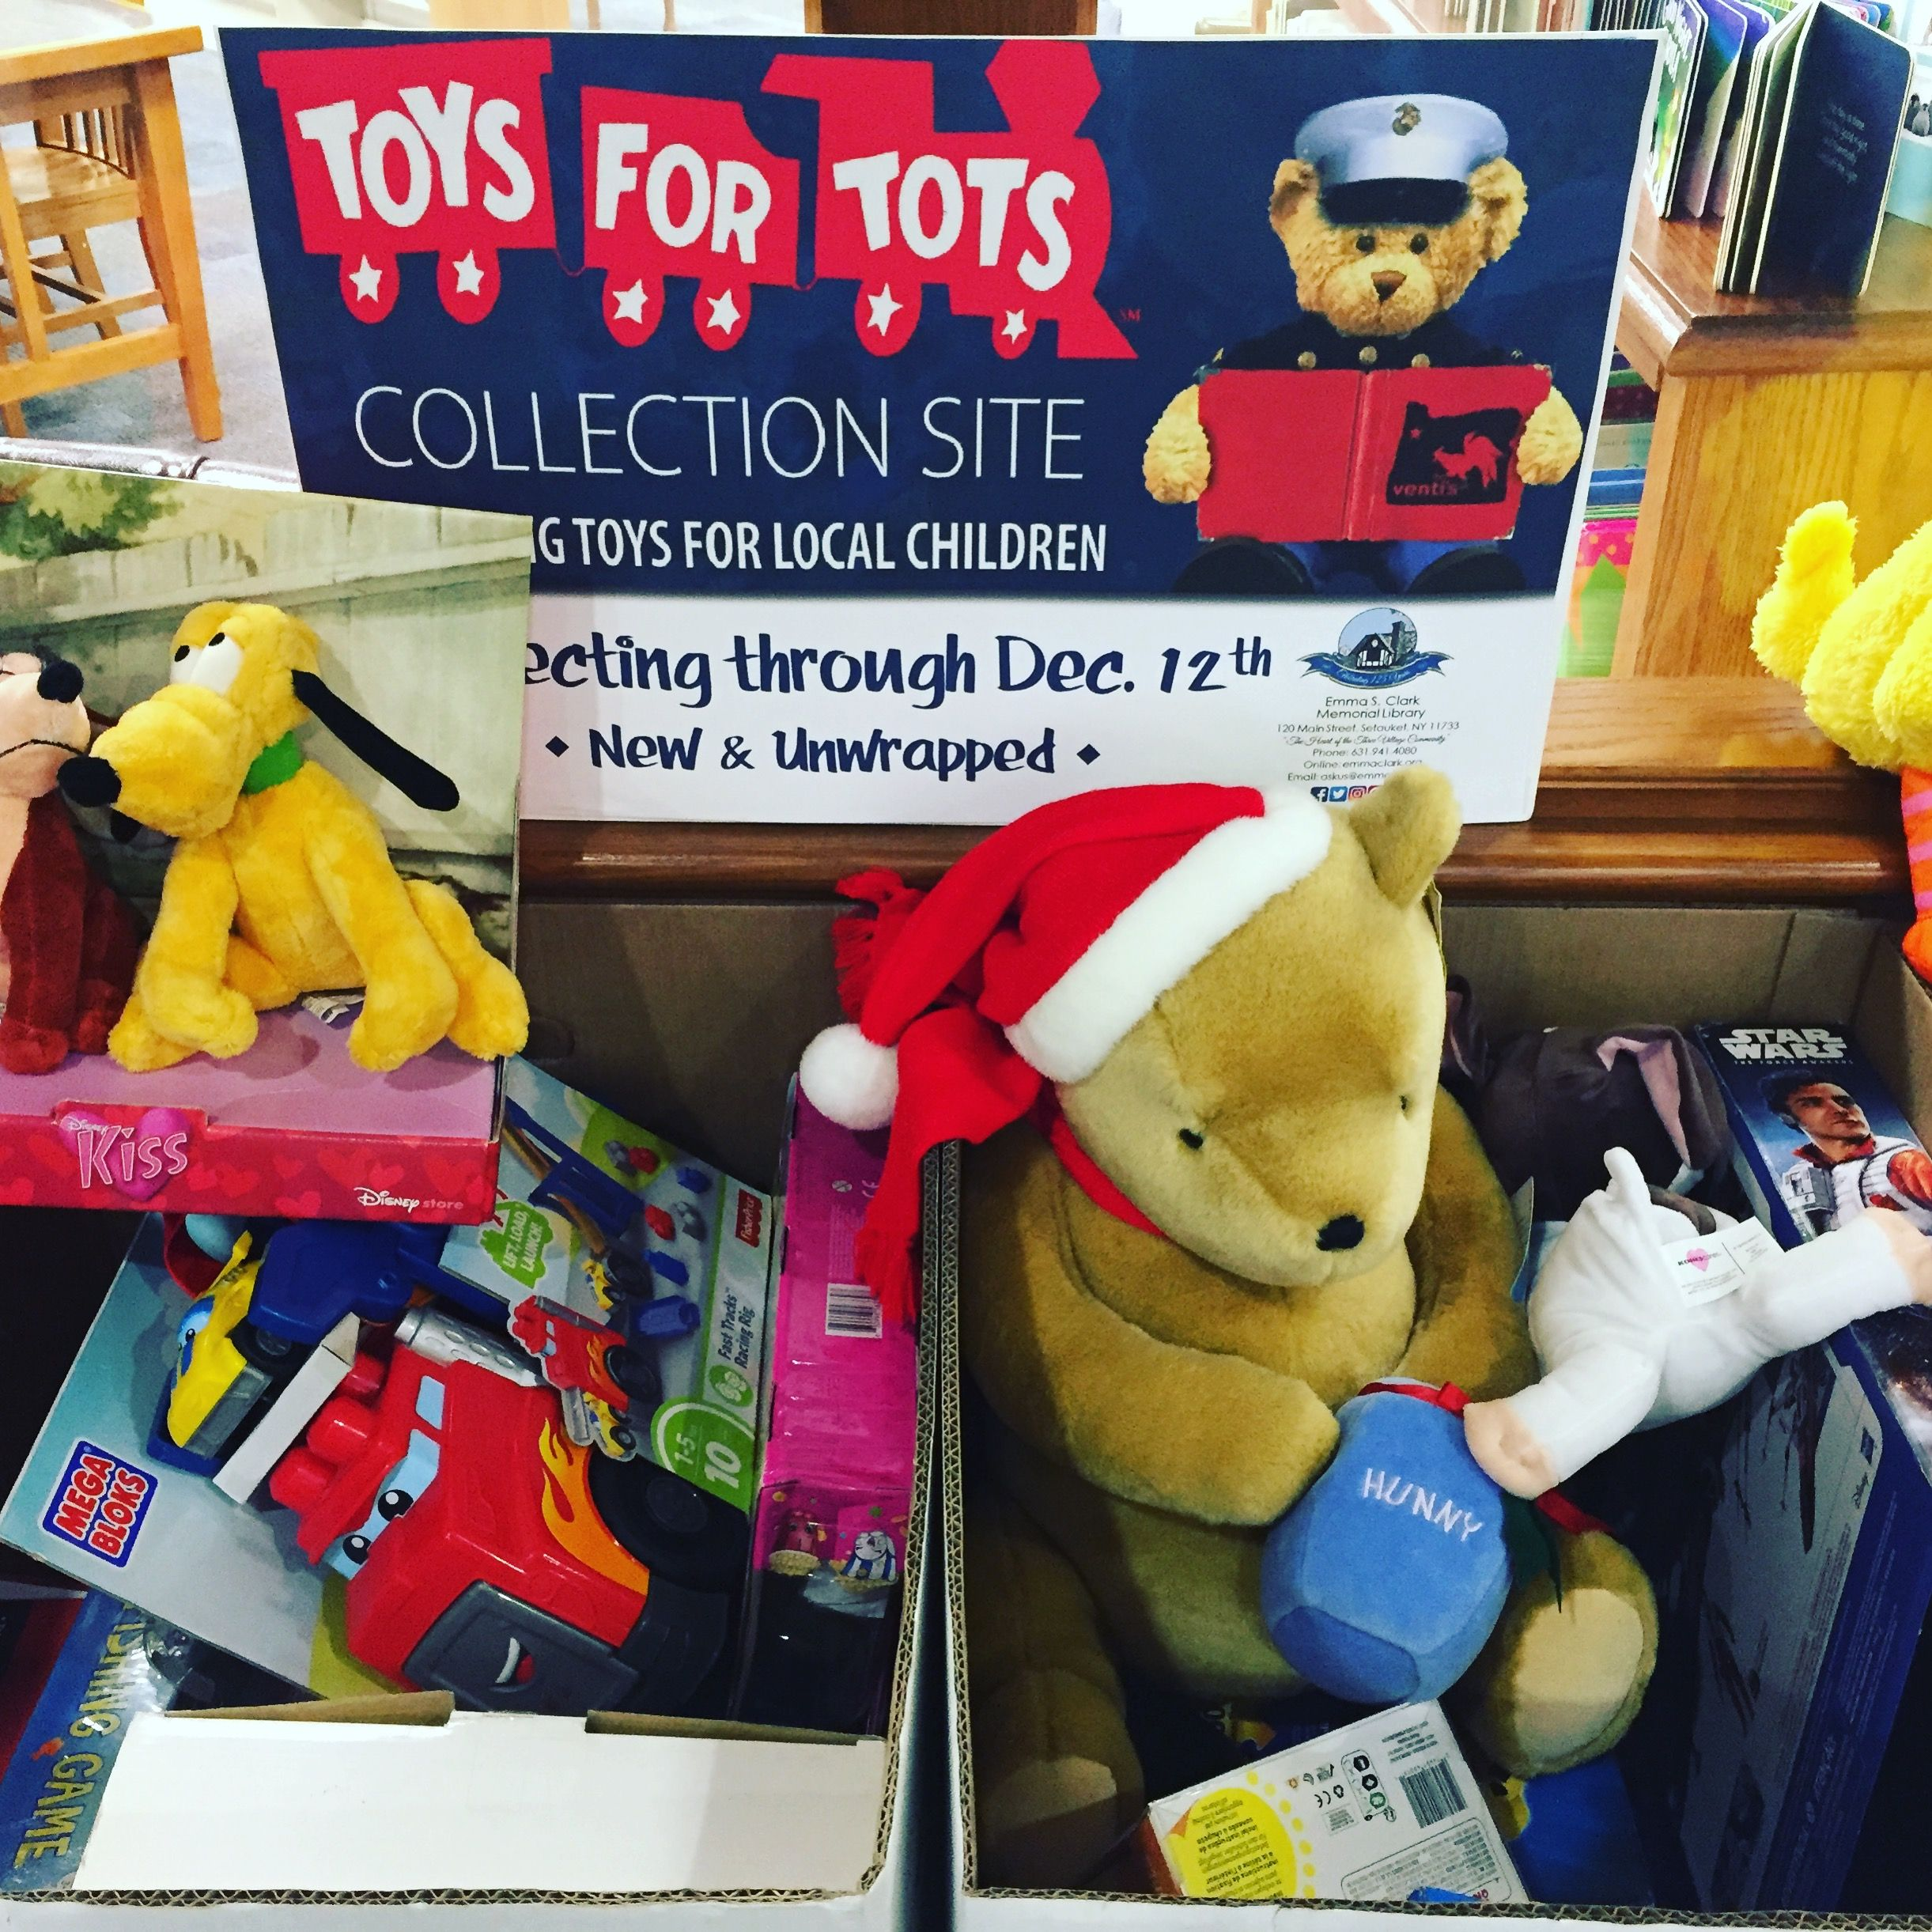 1 More Week To Donate To Toys For Tots Here At The Library